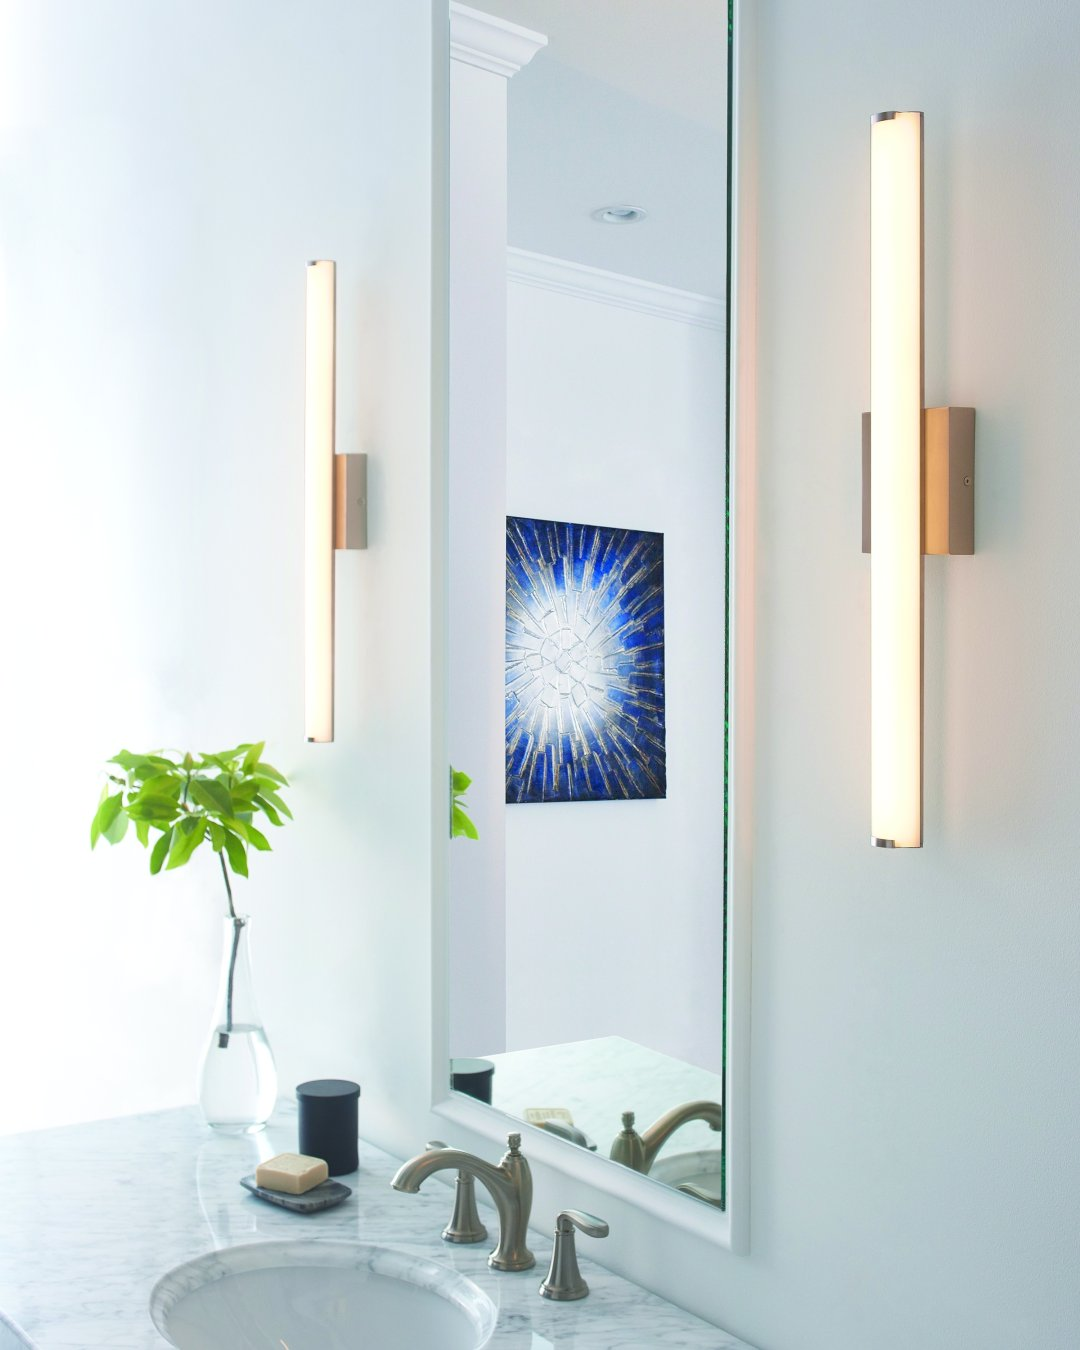 Bathroom lighting ideas 3 tips for better bath lighting at theres nothing quite like natural light right the true color of our face hair makeup and clothes is best represented in the daylight so this is the aloadofball Choice Image